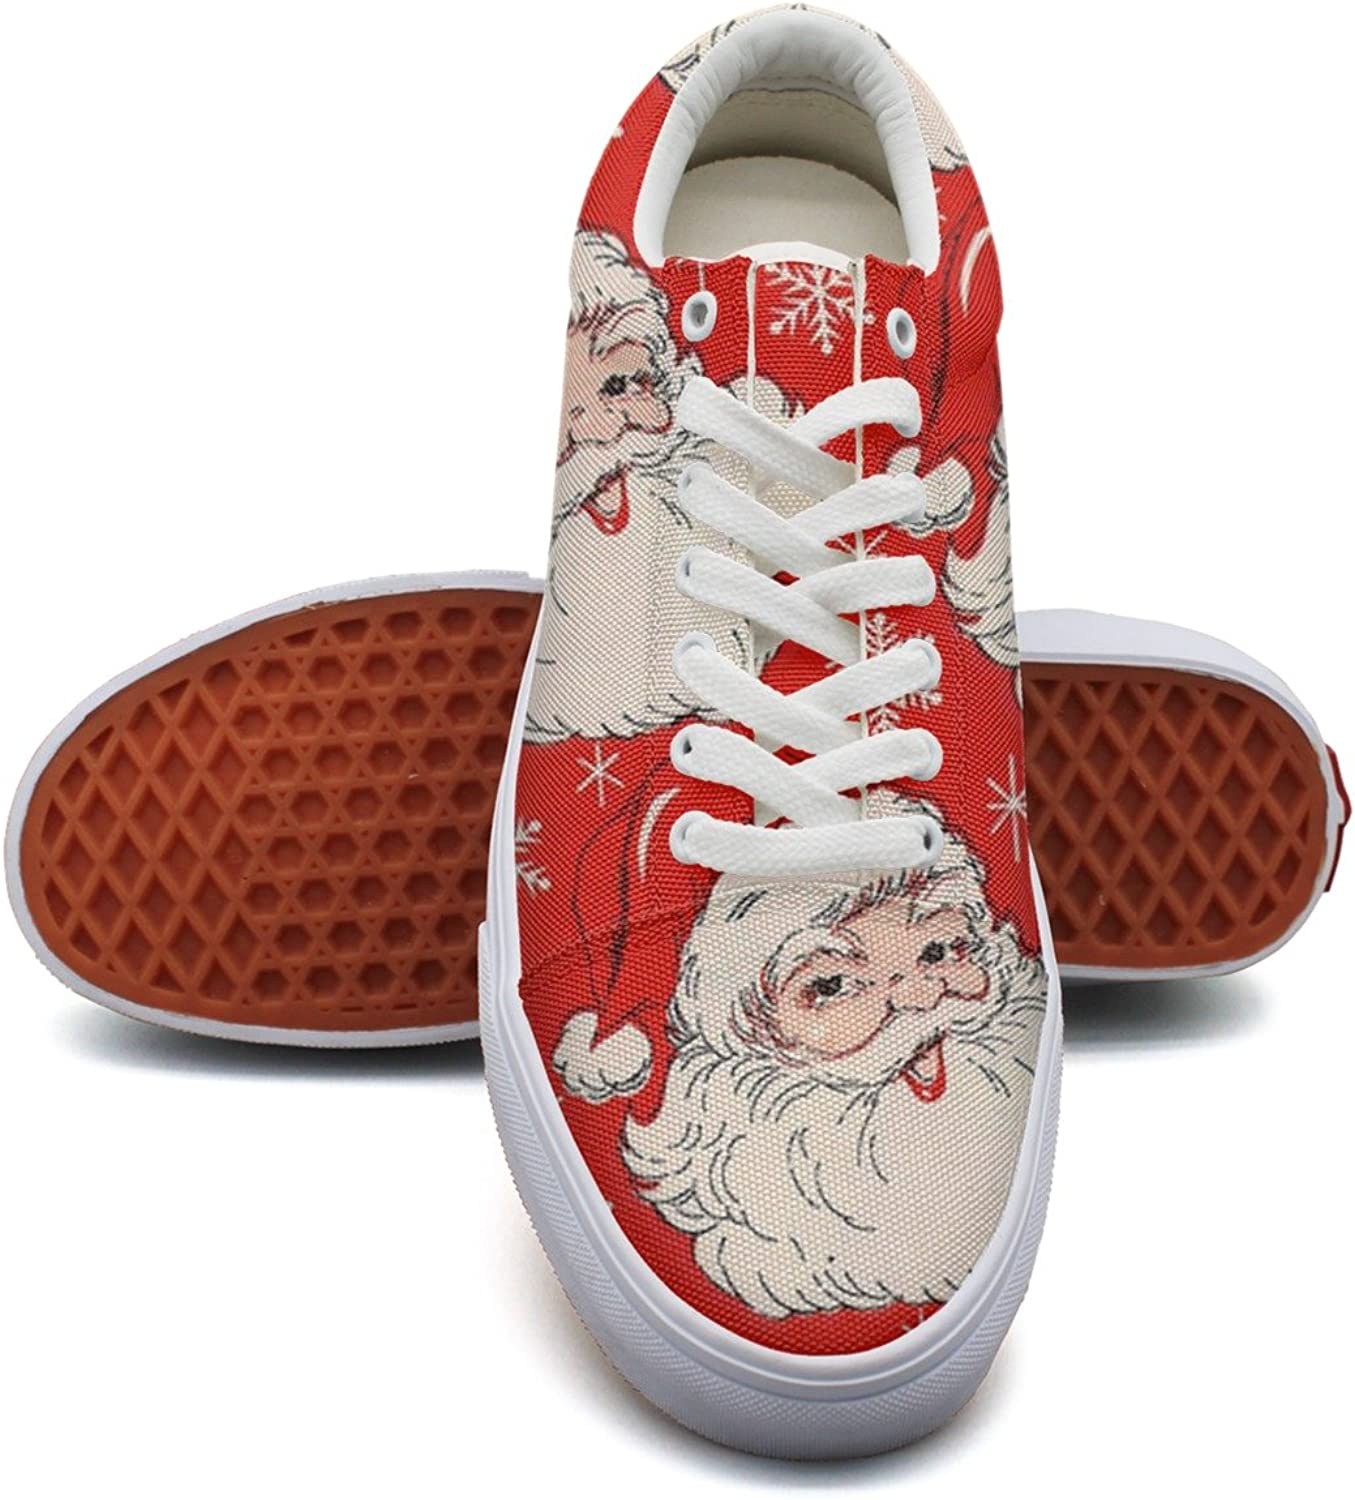 Red Hat Christmas Santa Fashion Canvas Sneakers shoes For Womns 3D Printed Low Top Running shoes